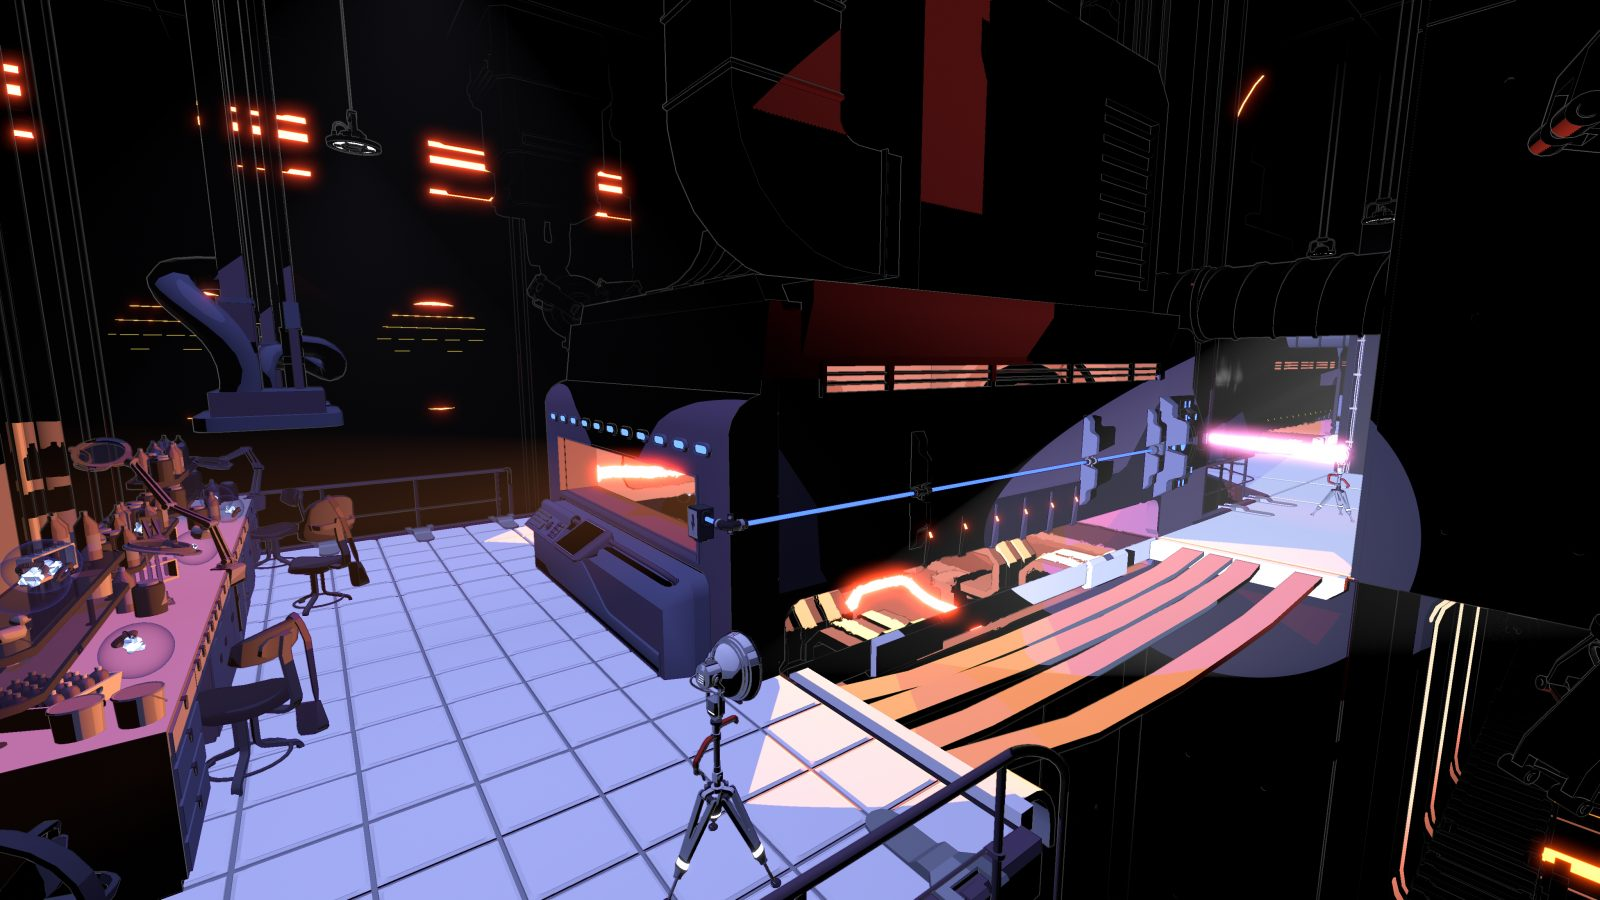 New games: Lightmatter is a first person puzzle game with shadows that kill you